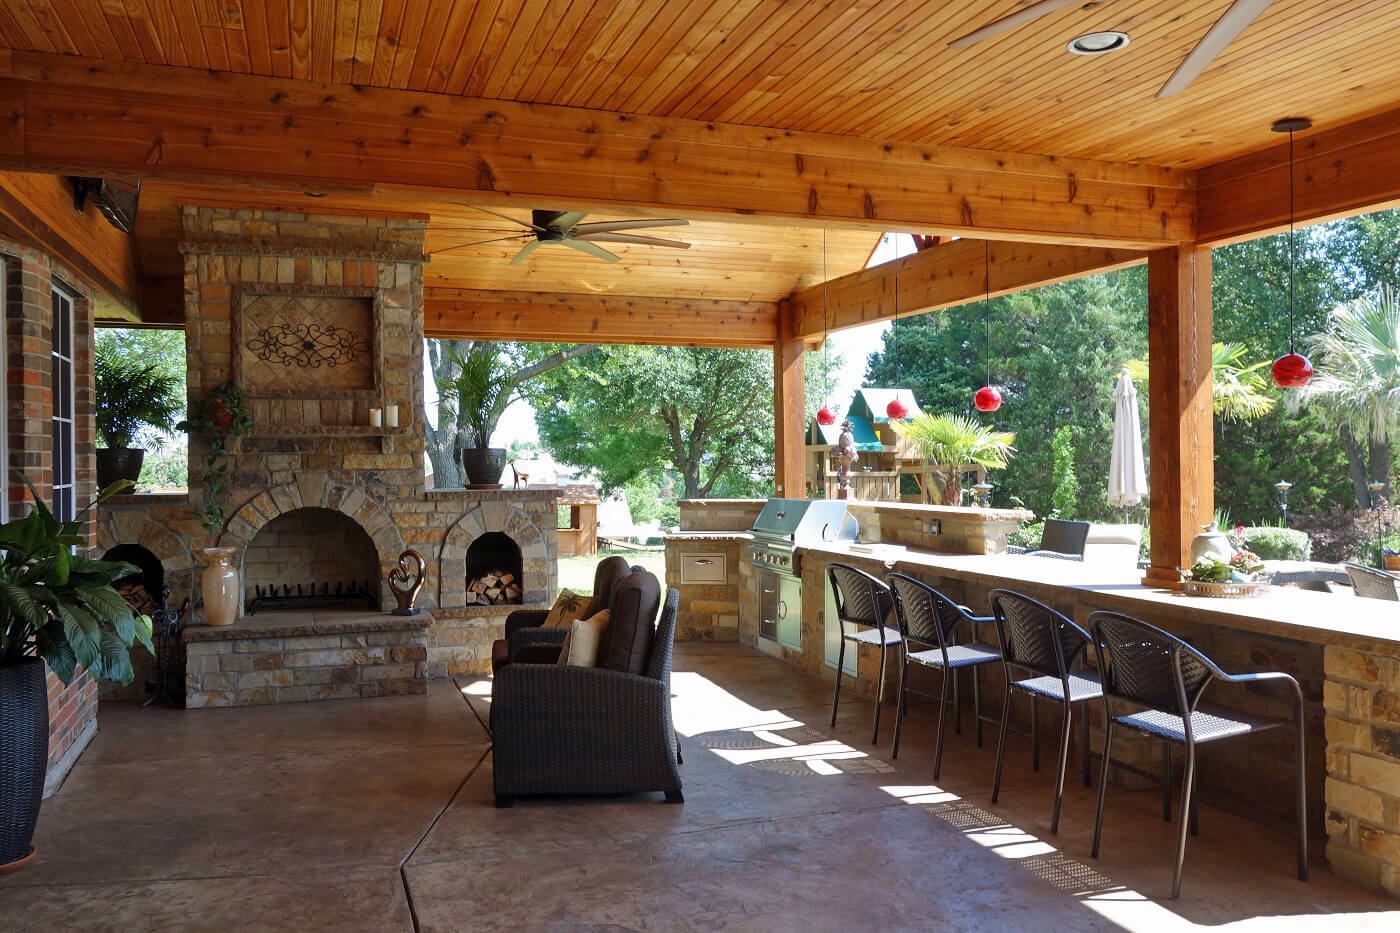 Custom covered patio with bar counter and outdoor fireplace